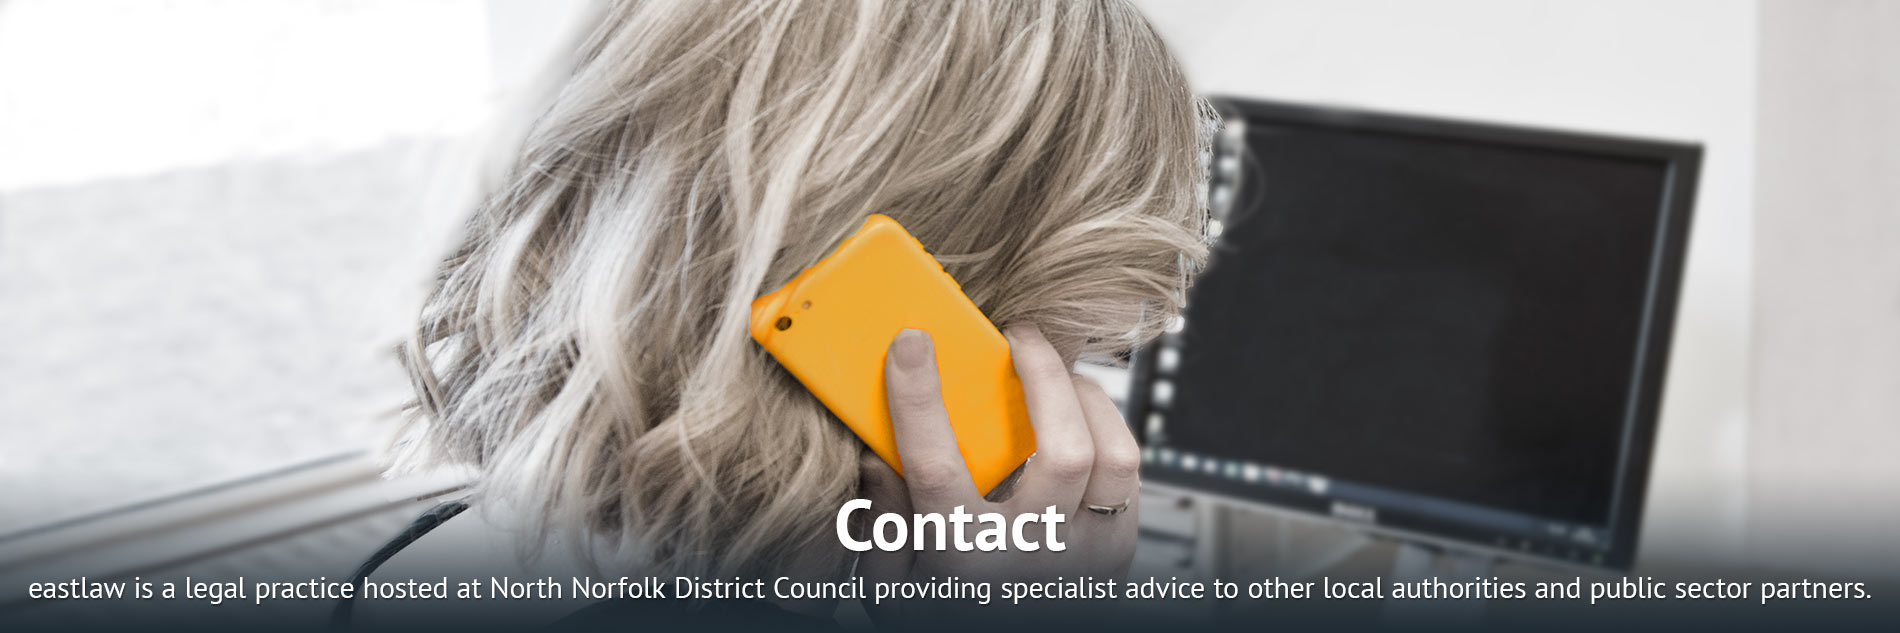 Contact Us: eastlaw is a legal practice hosted at North Norfolk District Council providing specialist advice to other local authorities and public sector partners.